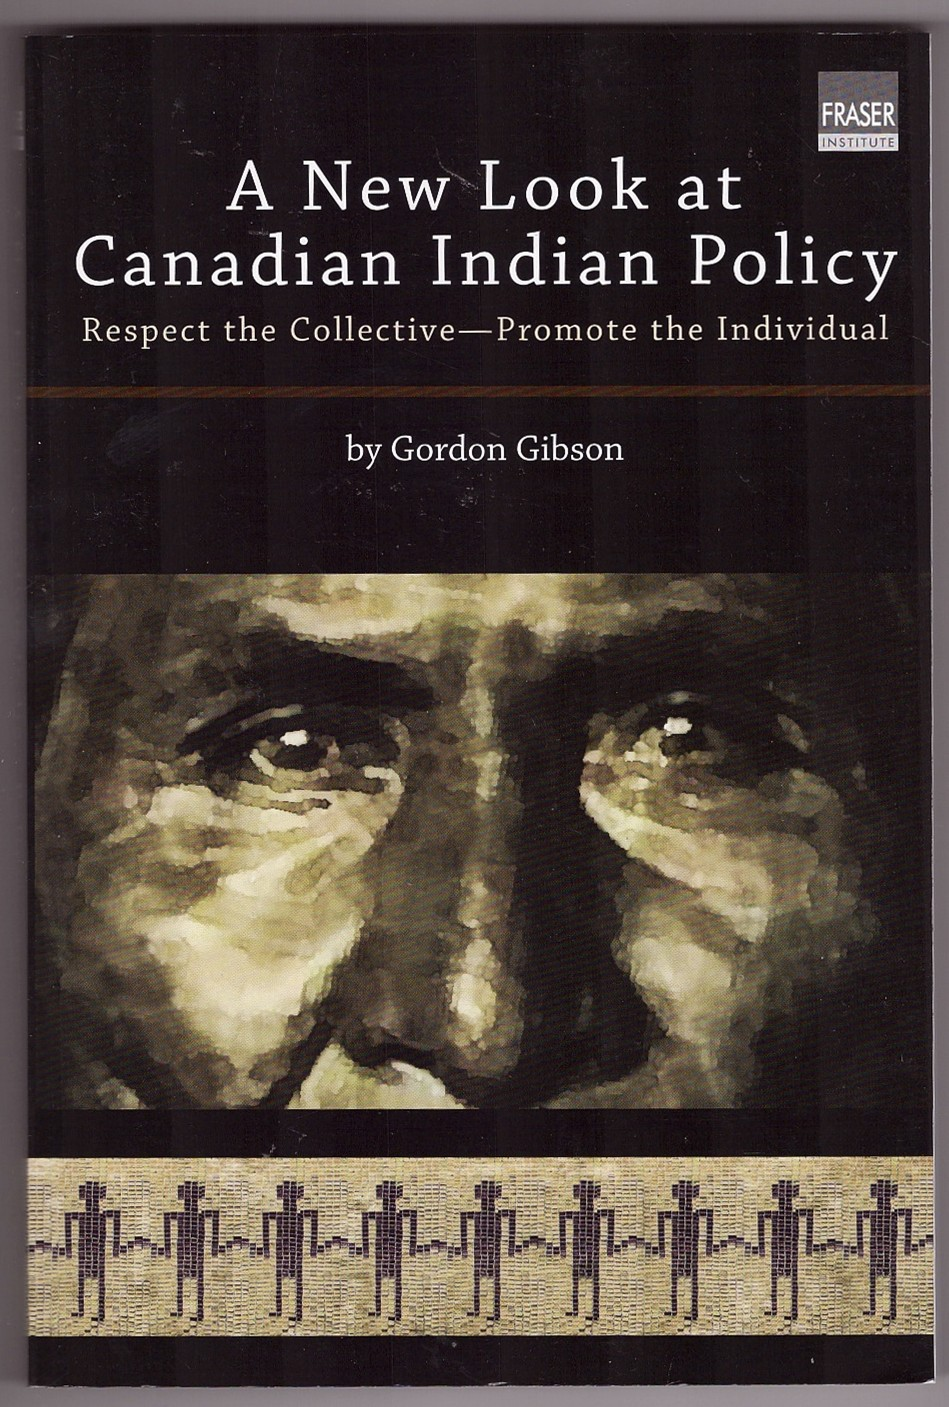 Image for A New Look at Canadian Indian Policy Respect the Collective - Promote the Individual